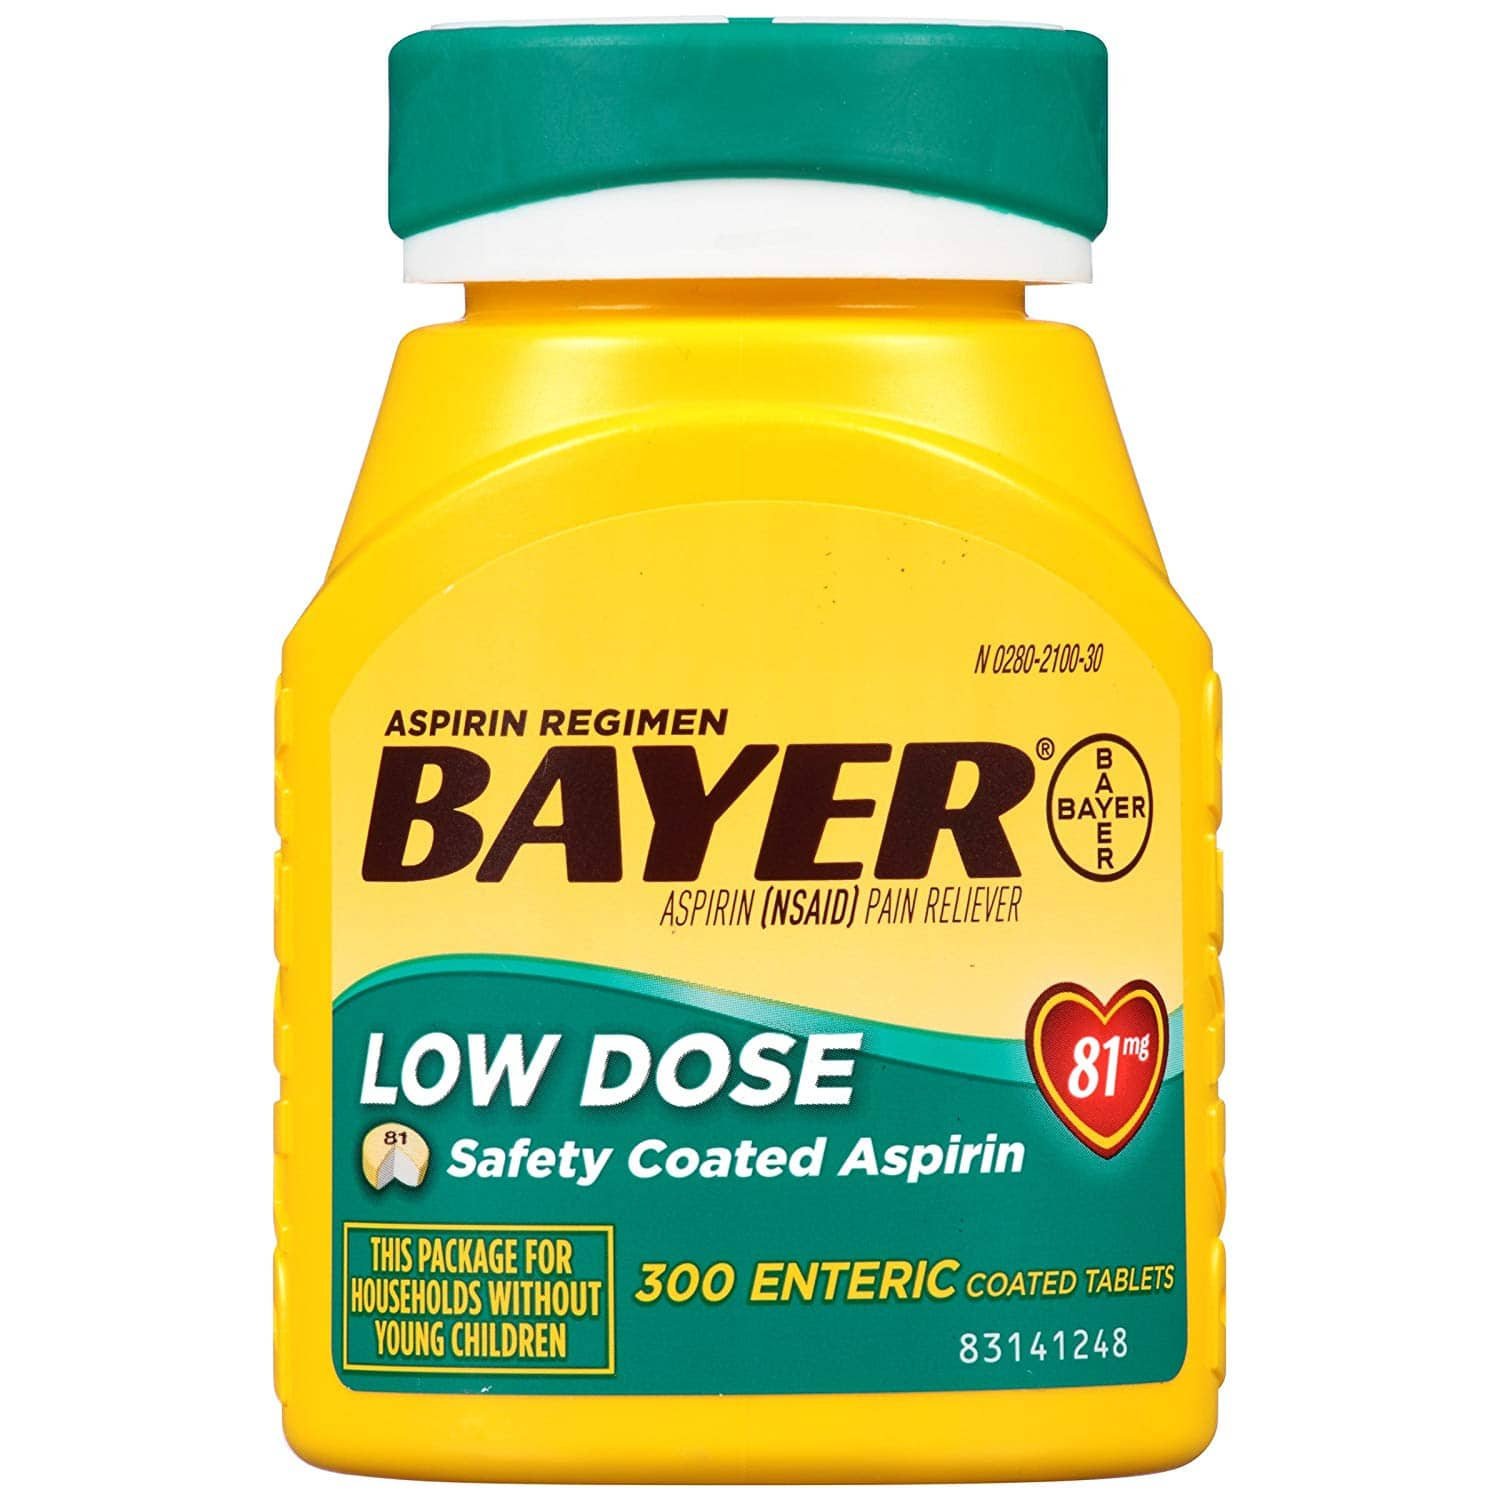 300-Count Bayer 81mg Low Dose Aspirin Regimen $6.54 w/ S&S + Free Shipping